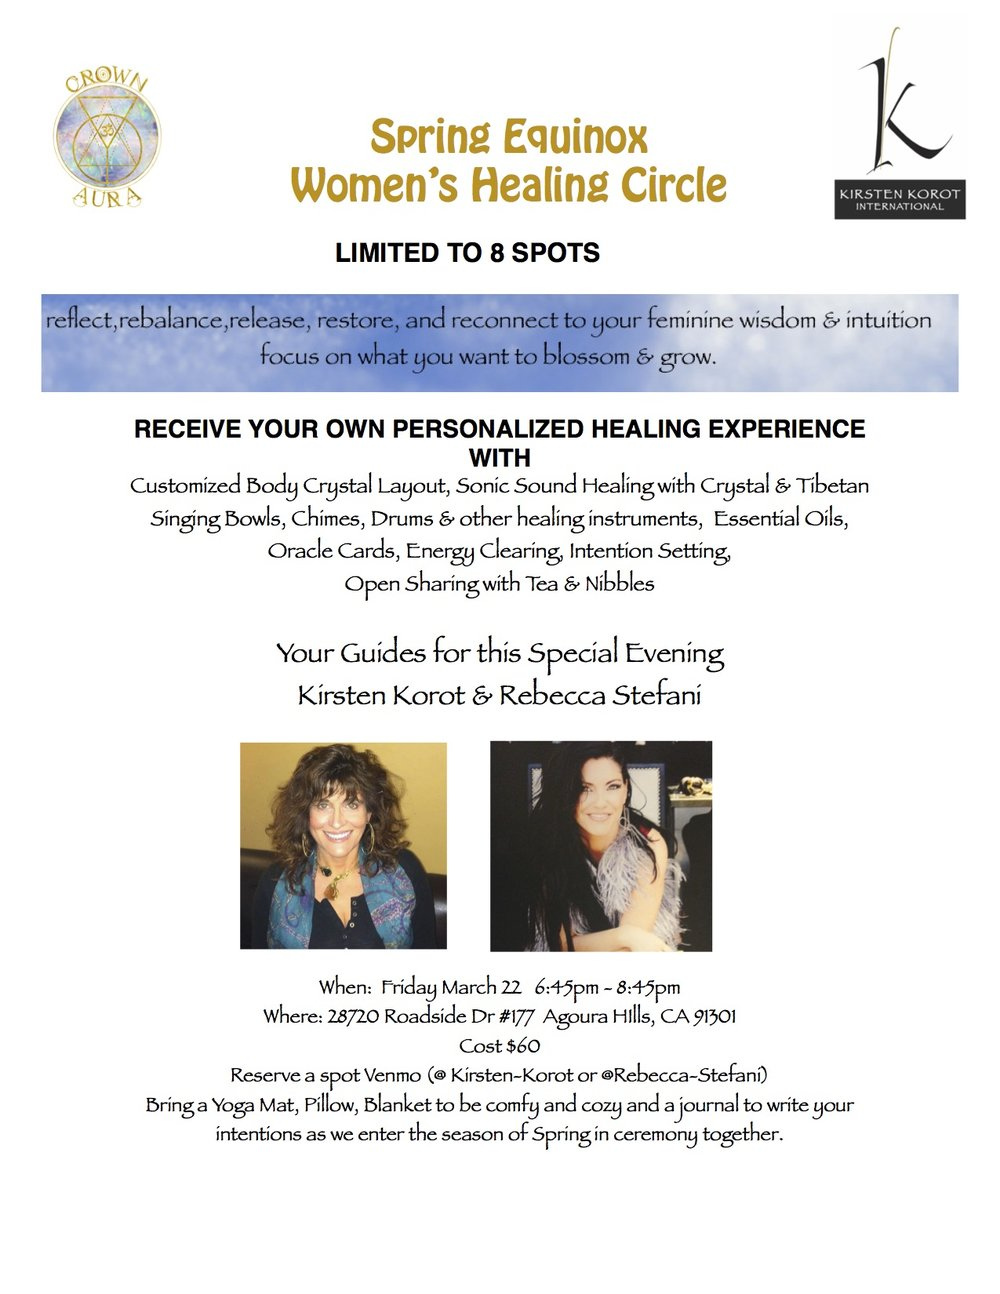 LIMITED TO ONLY 8 WOMEN    $60    PAYMENT THRU Venmo (@ Kirsten-Korot or @Rebecca-Stefani)    PLEASE INDICATE IT IS FOR SPRINQ EQUINOX WOMEN'S HEALING CIRCLE IN COMMENT.